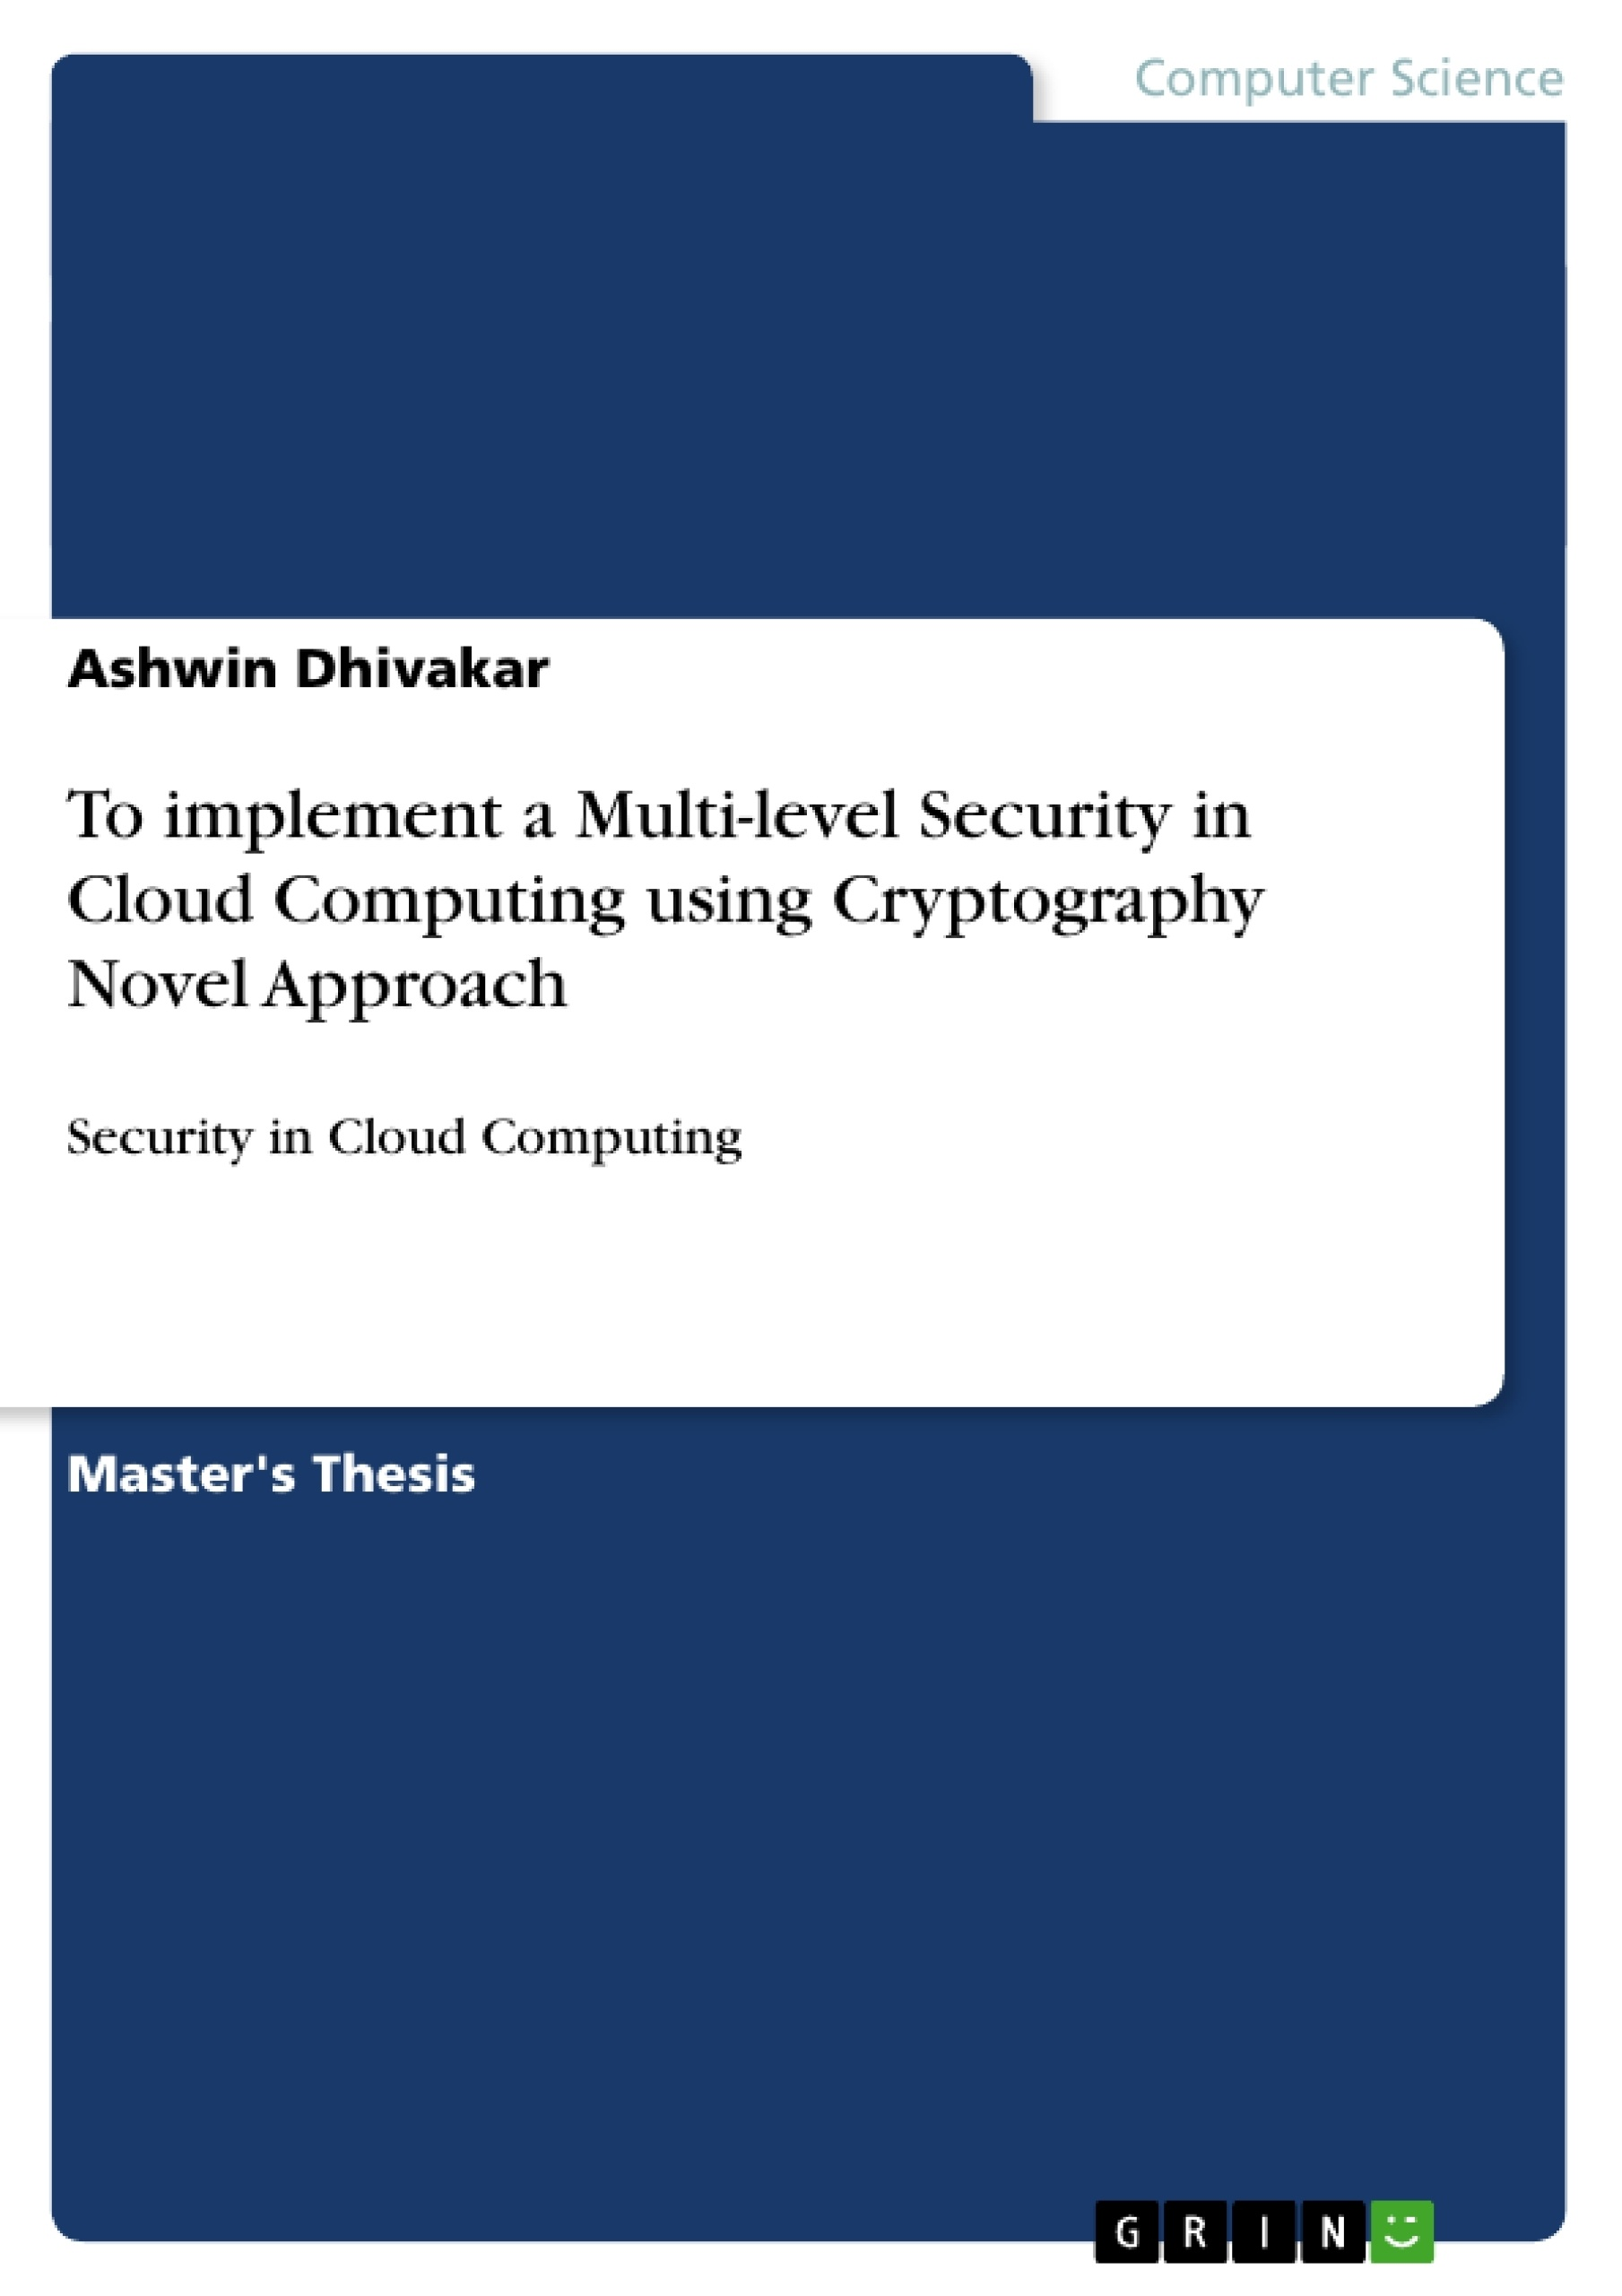 cloud computing literature review computer science essay Published: mon, 5 dec 2016 [michael et al 2010] cloud computing is the it liberation model that provides infrastructure and computer resources as service in an organization, the information is shared by implementing the private cloud.